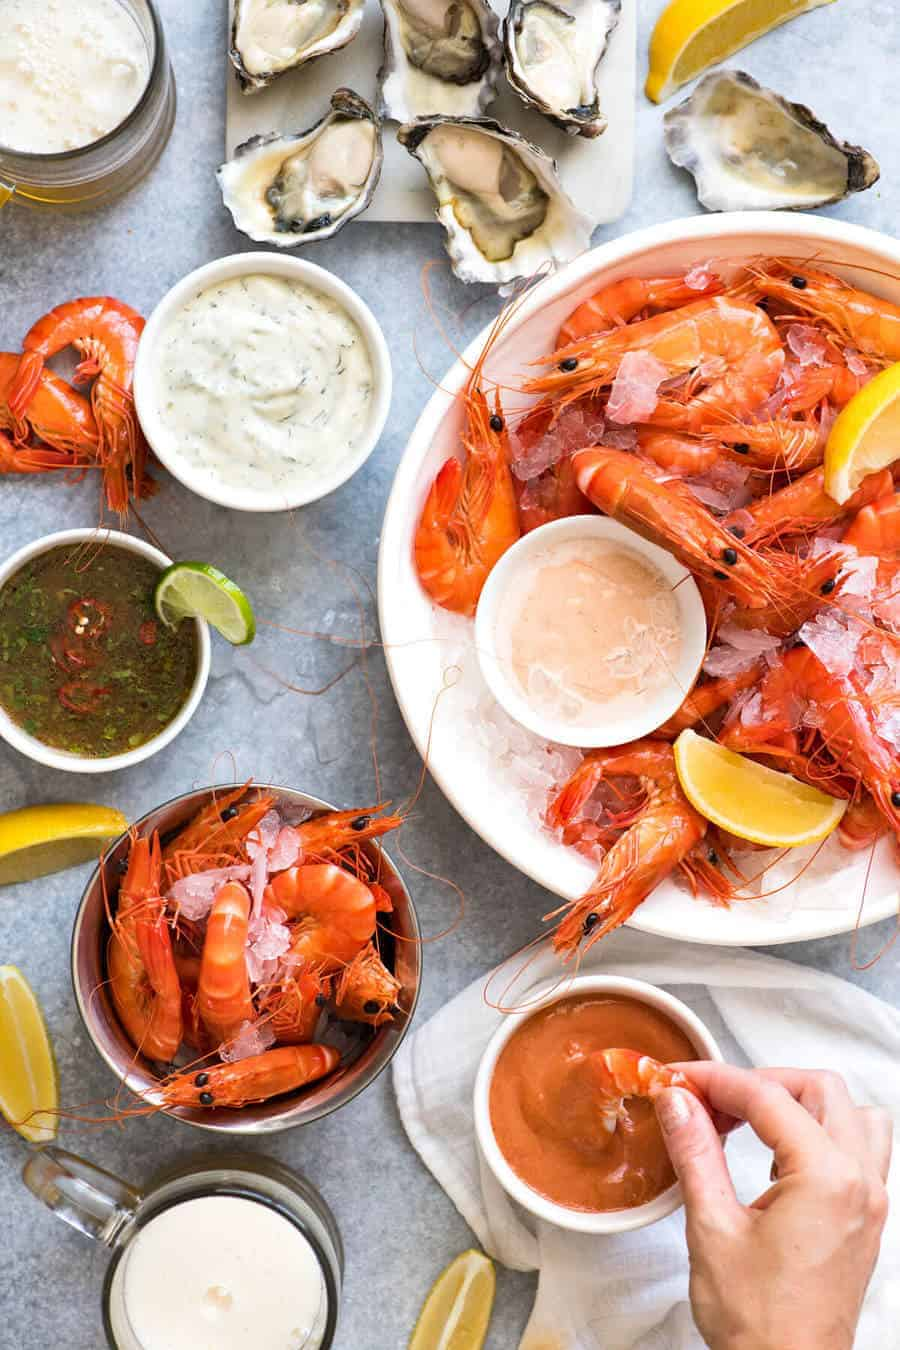 5 great Prawn Dipping Sauces: Cocktail / Seafood Sauce, Tartare, Marie Rose / Thousand Island, or a Thai Chilli Lime Sauce for something fresher. www.recipetineats.com